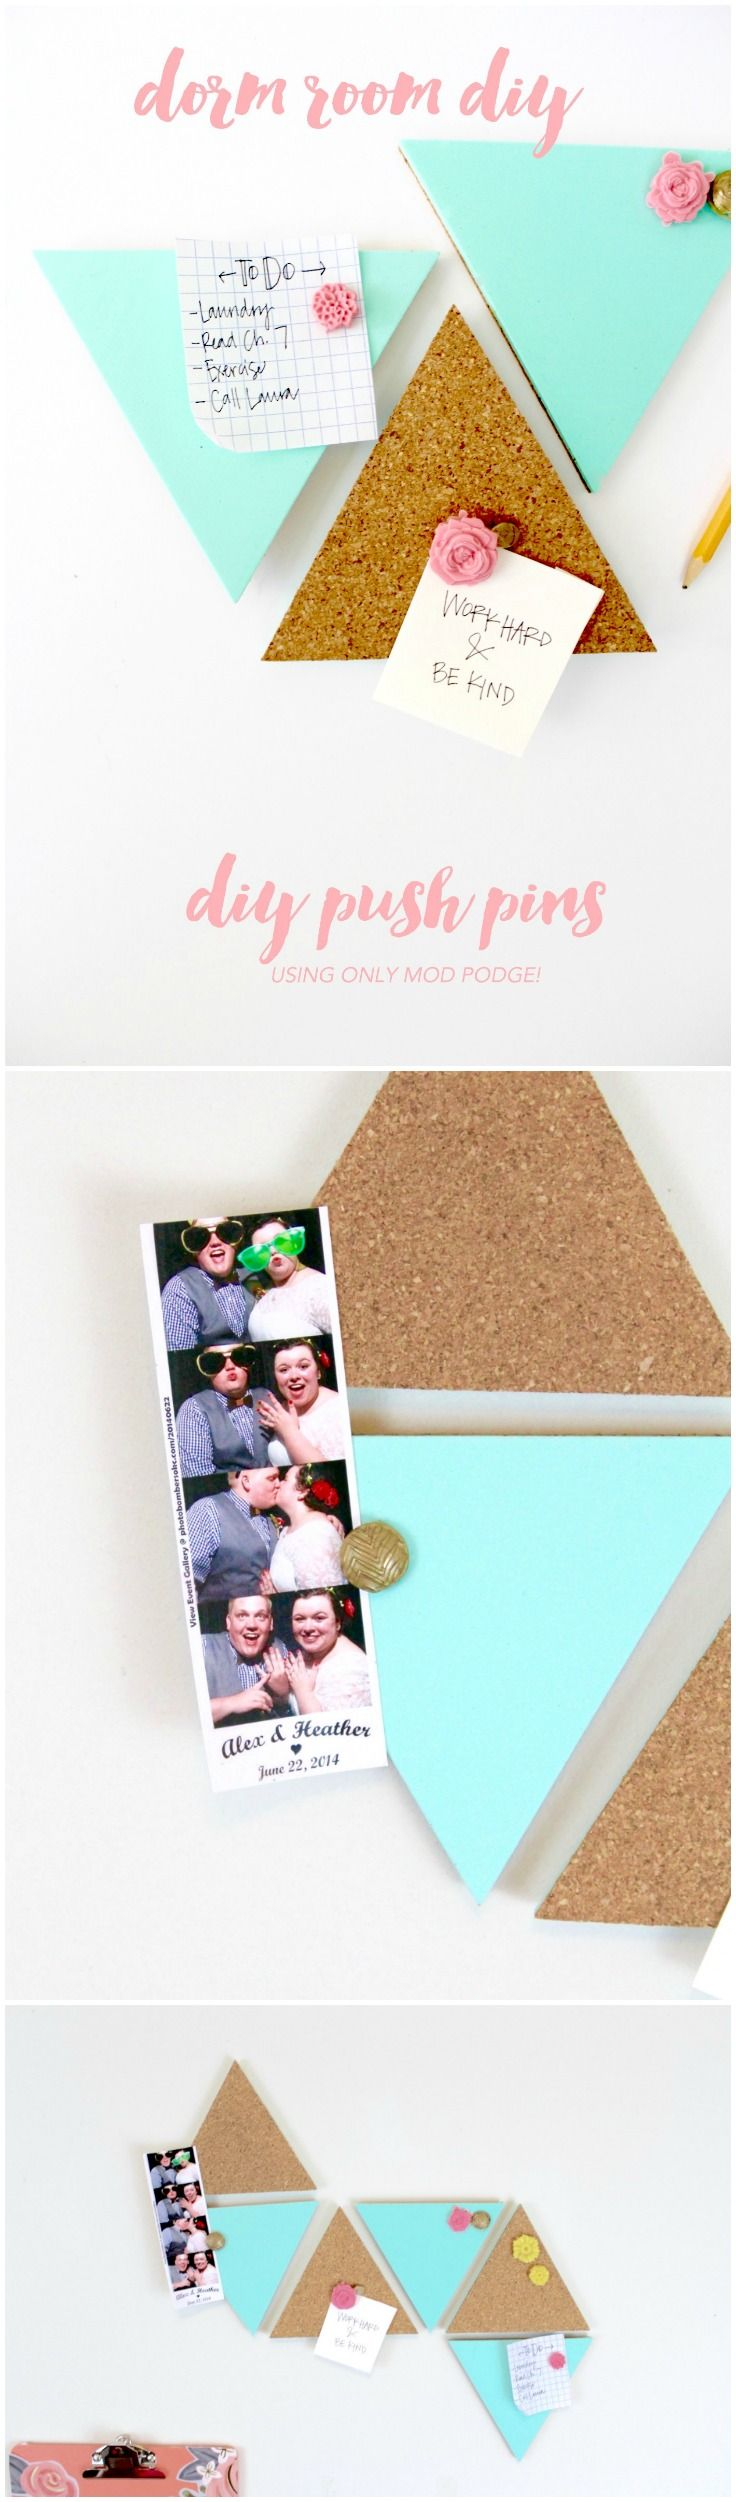 Make your space too cute to boot this school year with these decorative Push Pins! They are made using Mod Melts and will add glam to your space!